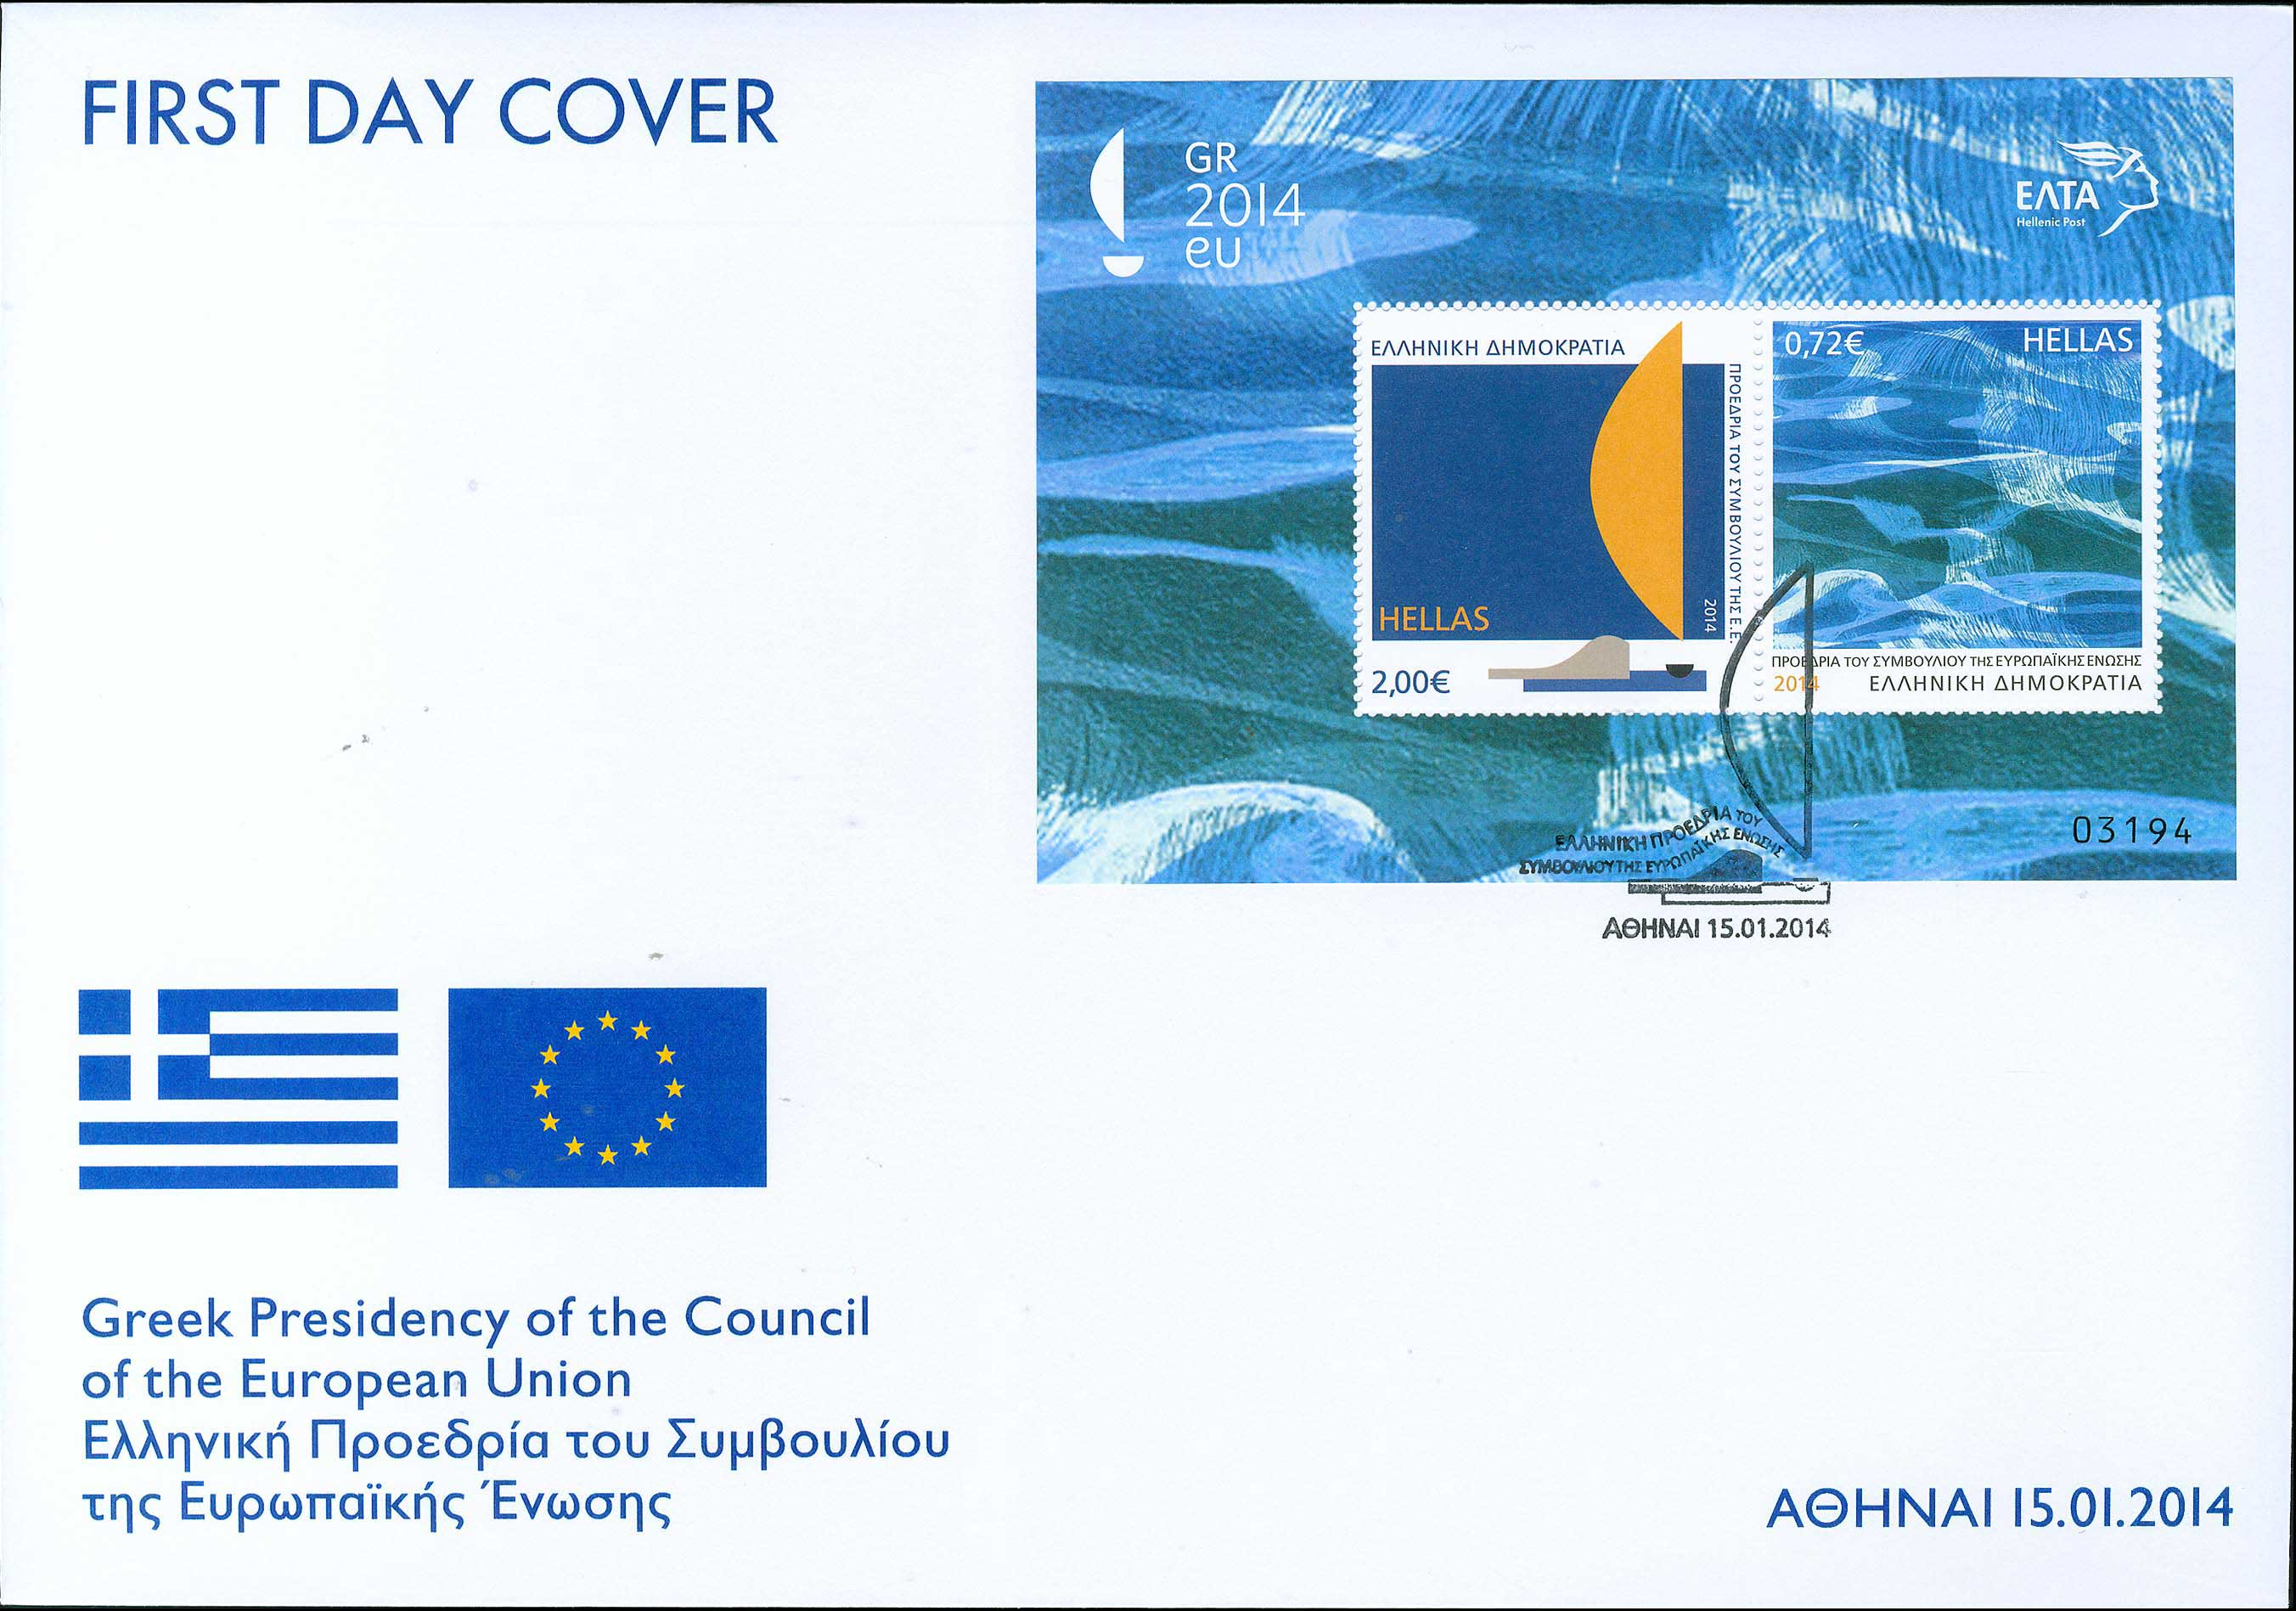 Lot 628 - -  FIRST DAY COVER First day cover -  A. Karamitsos Public Auction 668 General Philatelic Auction